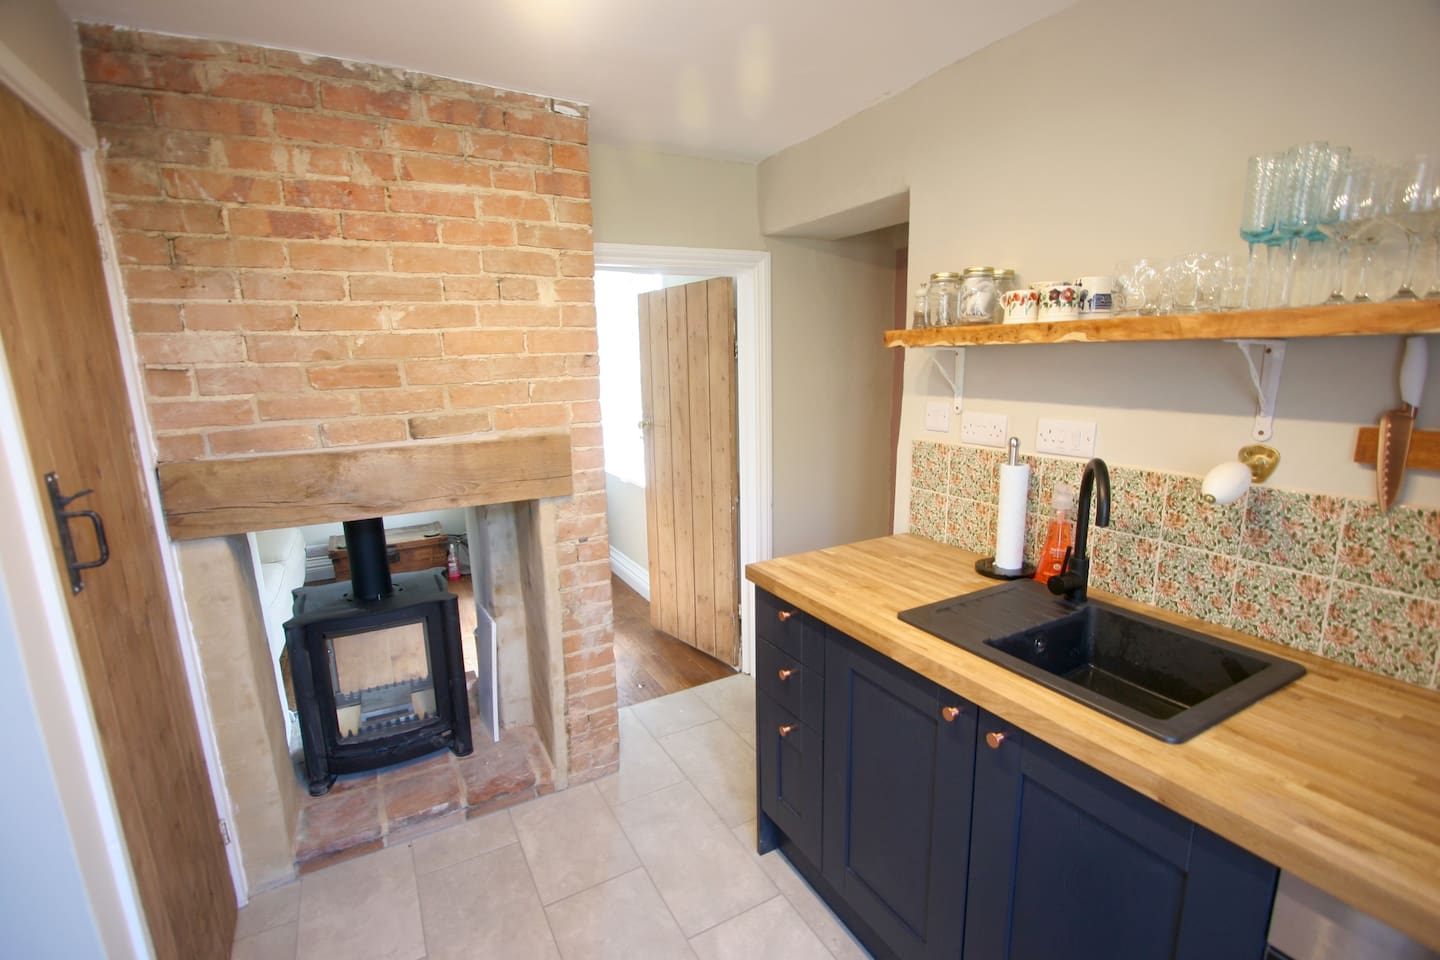 Brand new fitted kitchen, double sided wood burner and exposed brick fireplace